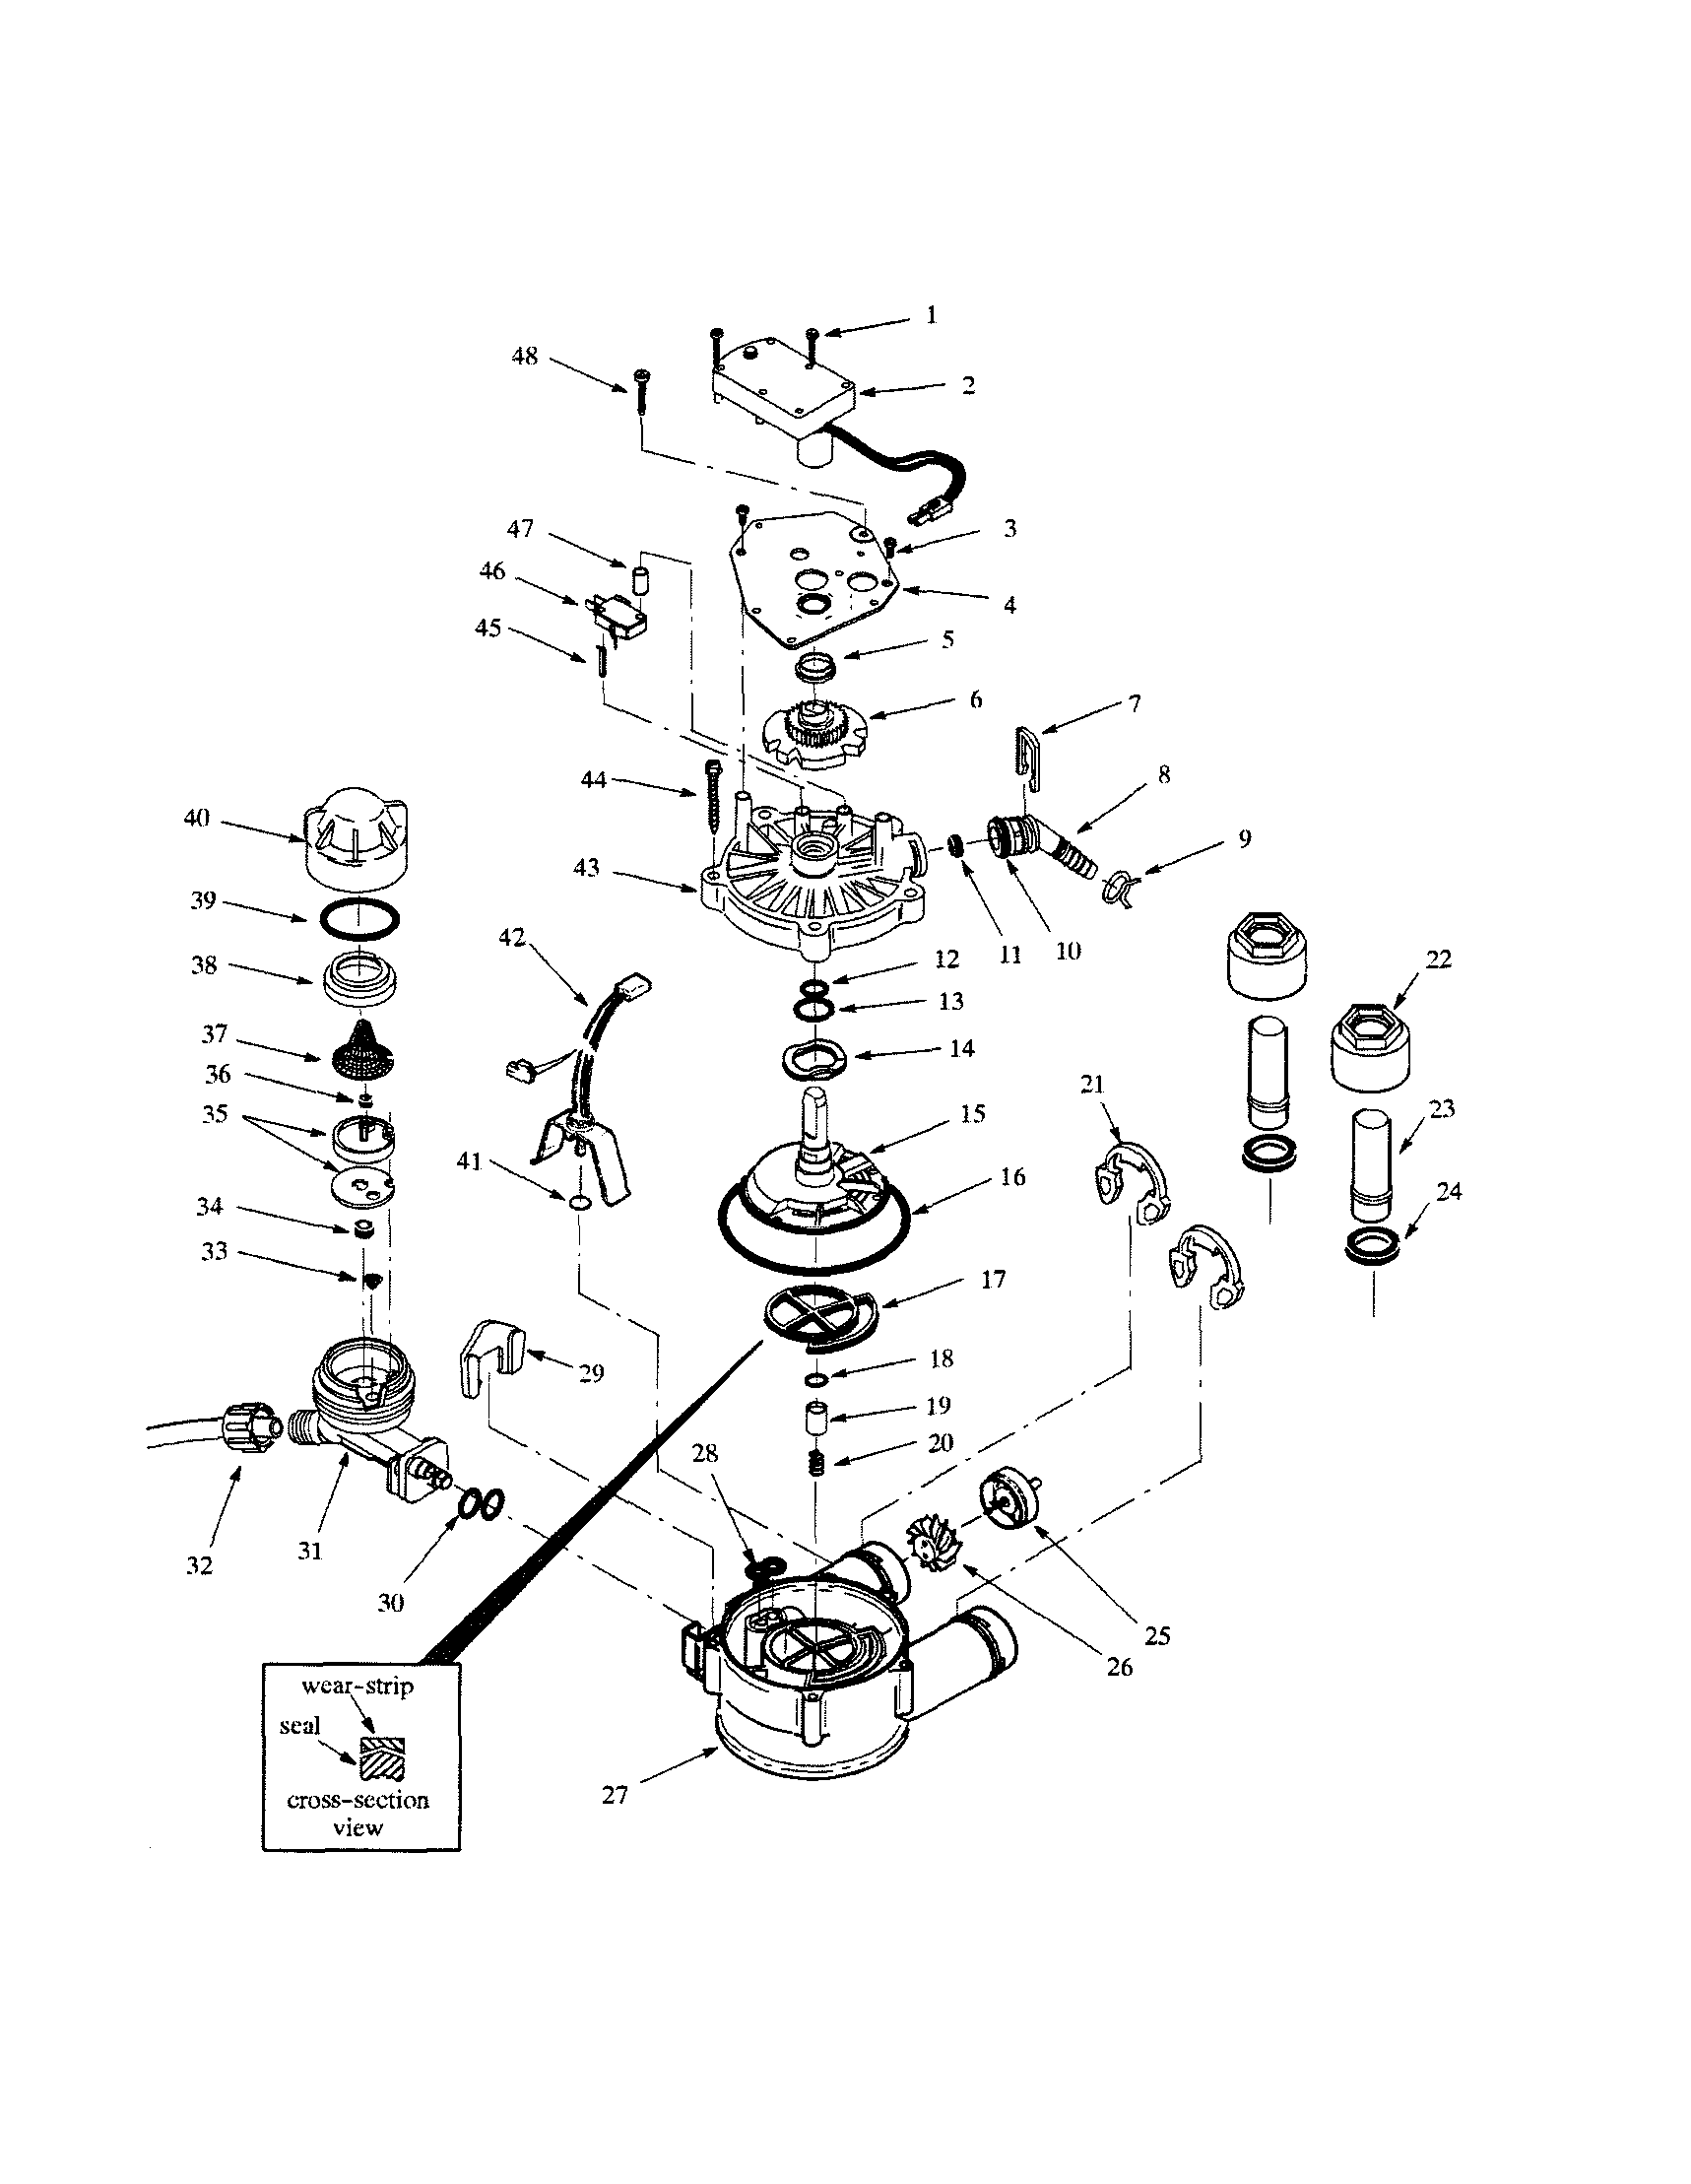 hight resolution of whirlpool whes30 valve body rotor disc diagram